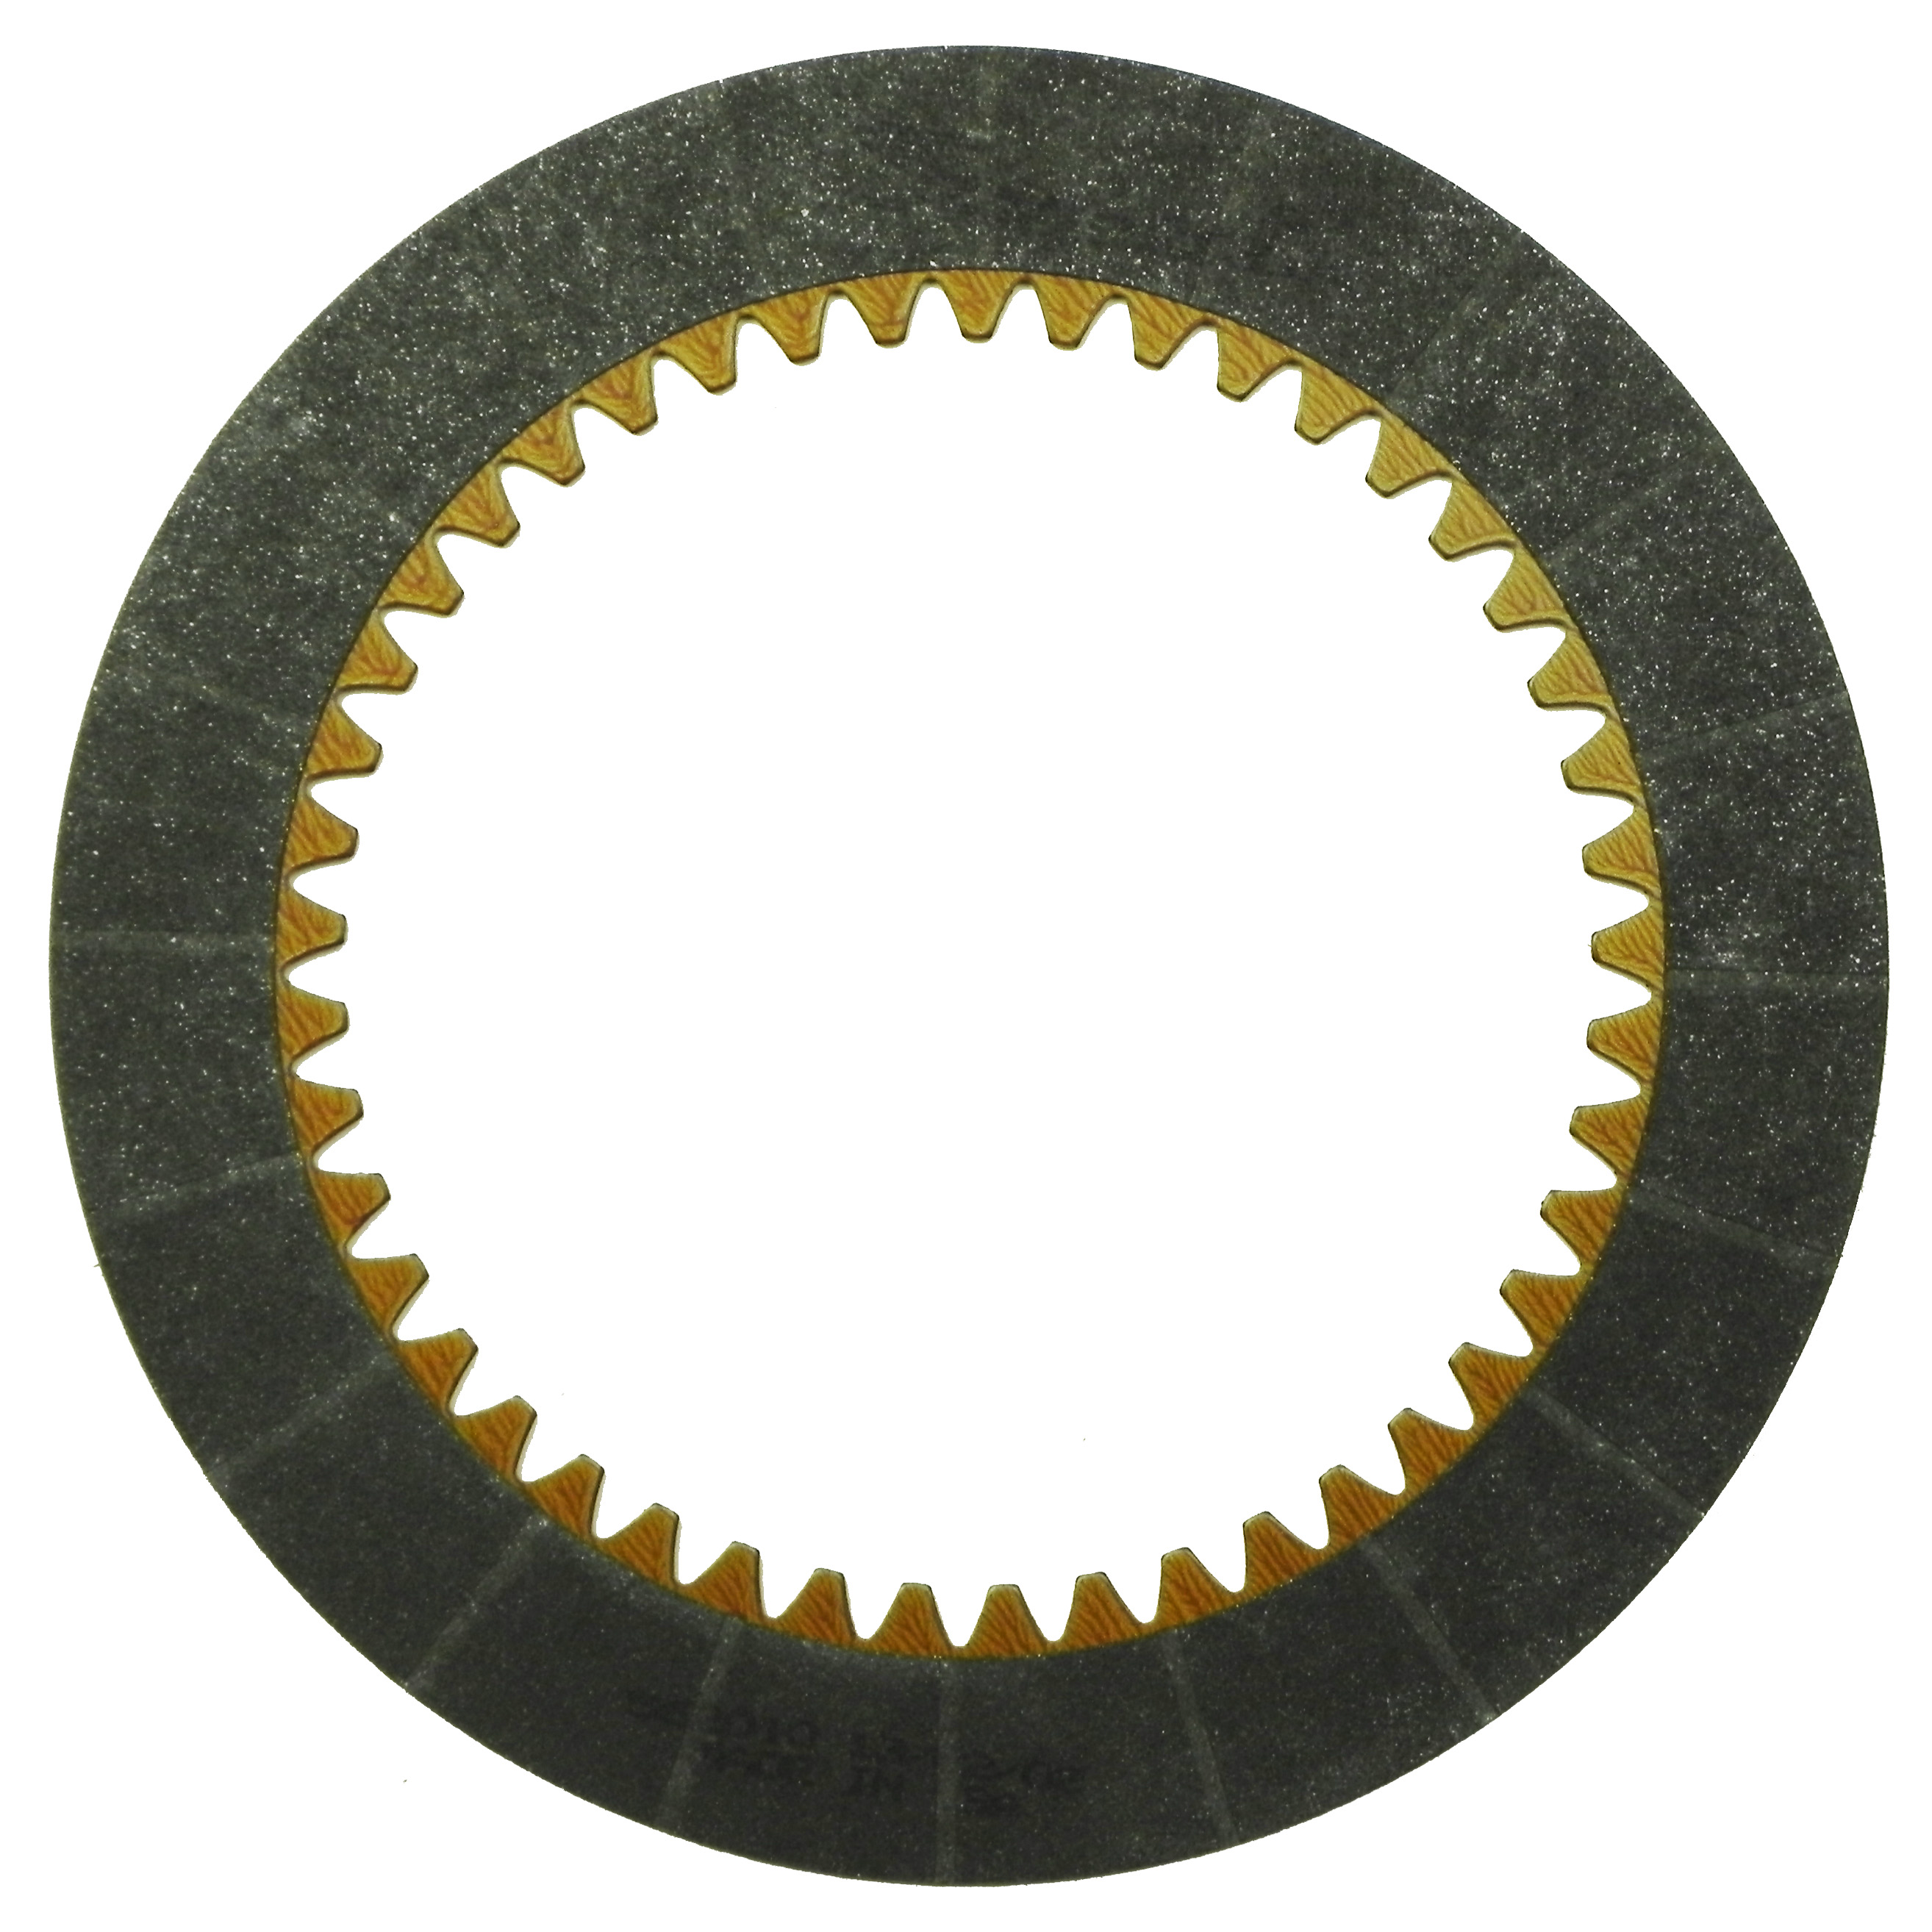 R562010 | 1991-2004 Friction Clutch Plate High Energy 1st, 2nd, Low Hold, Reverse High Energy